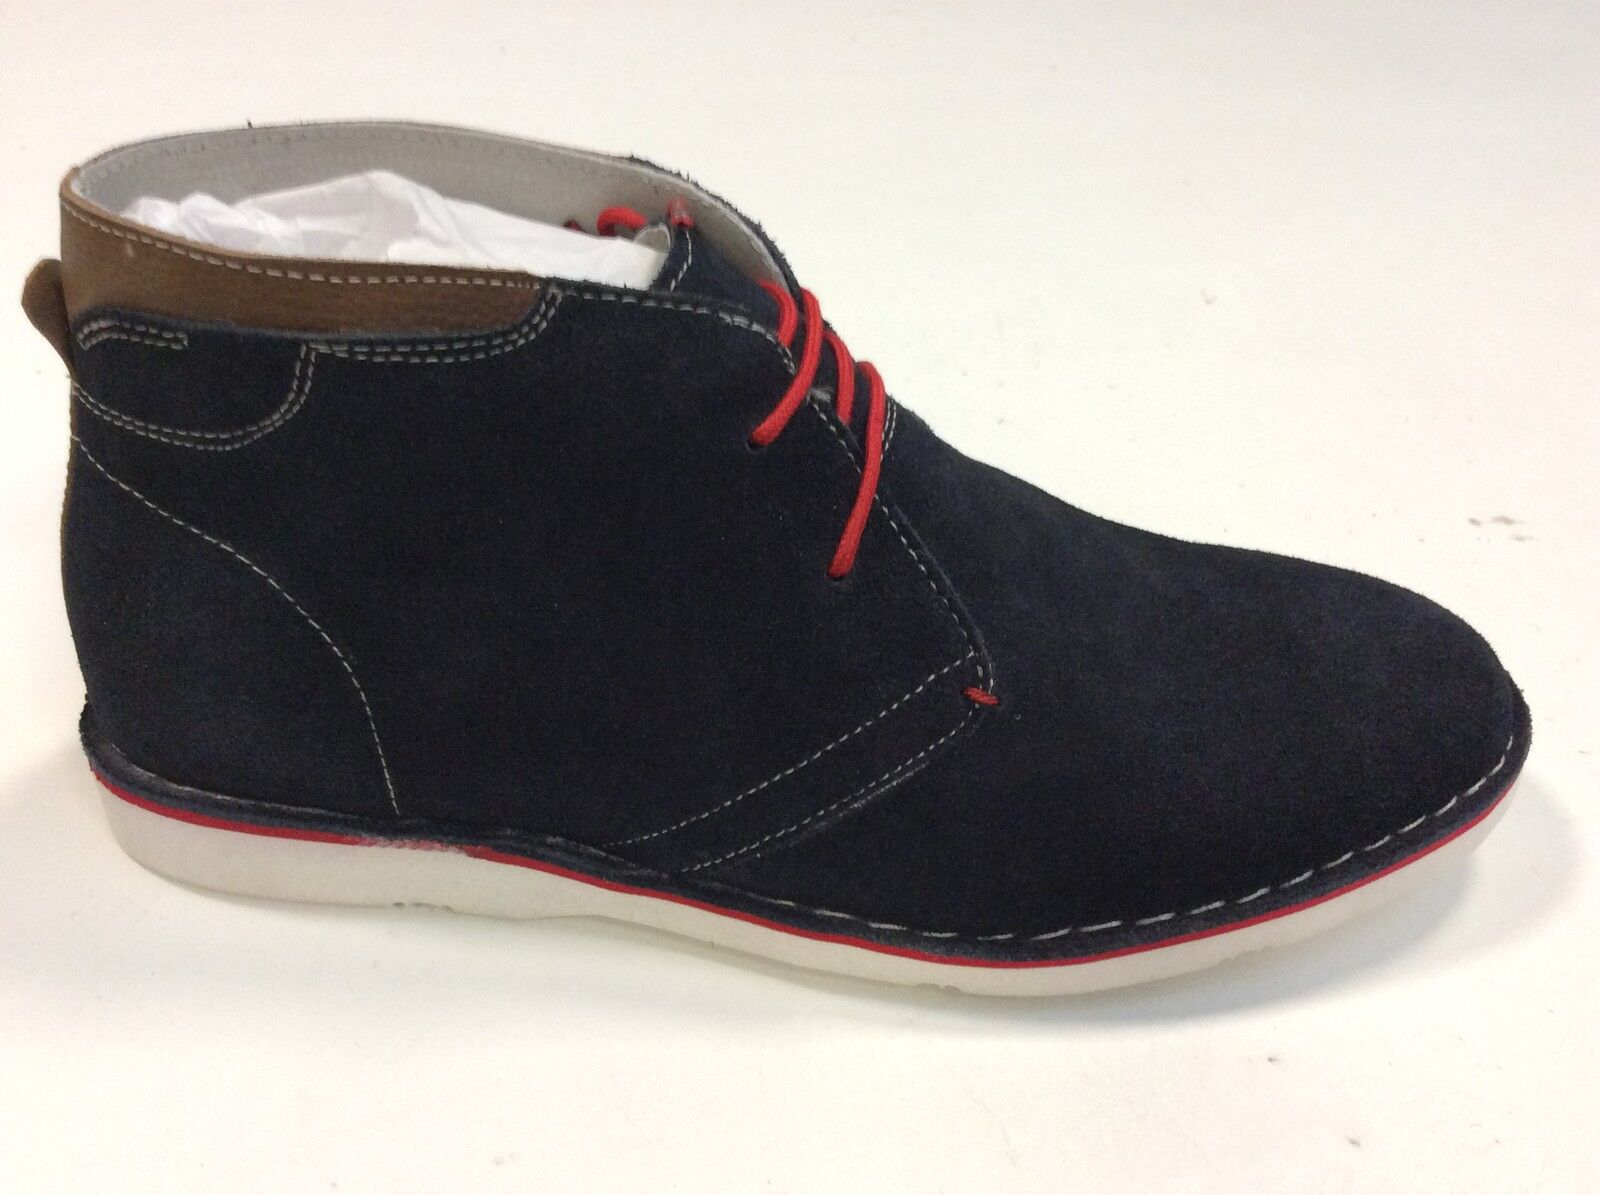 Chaussure mode summer Bsl tipo Clarks genuine leather bluee man very light